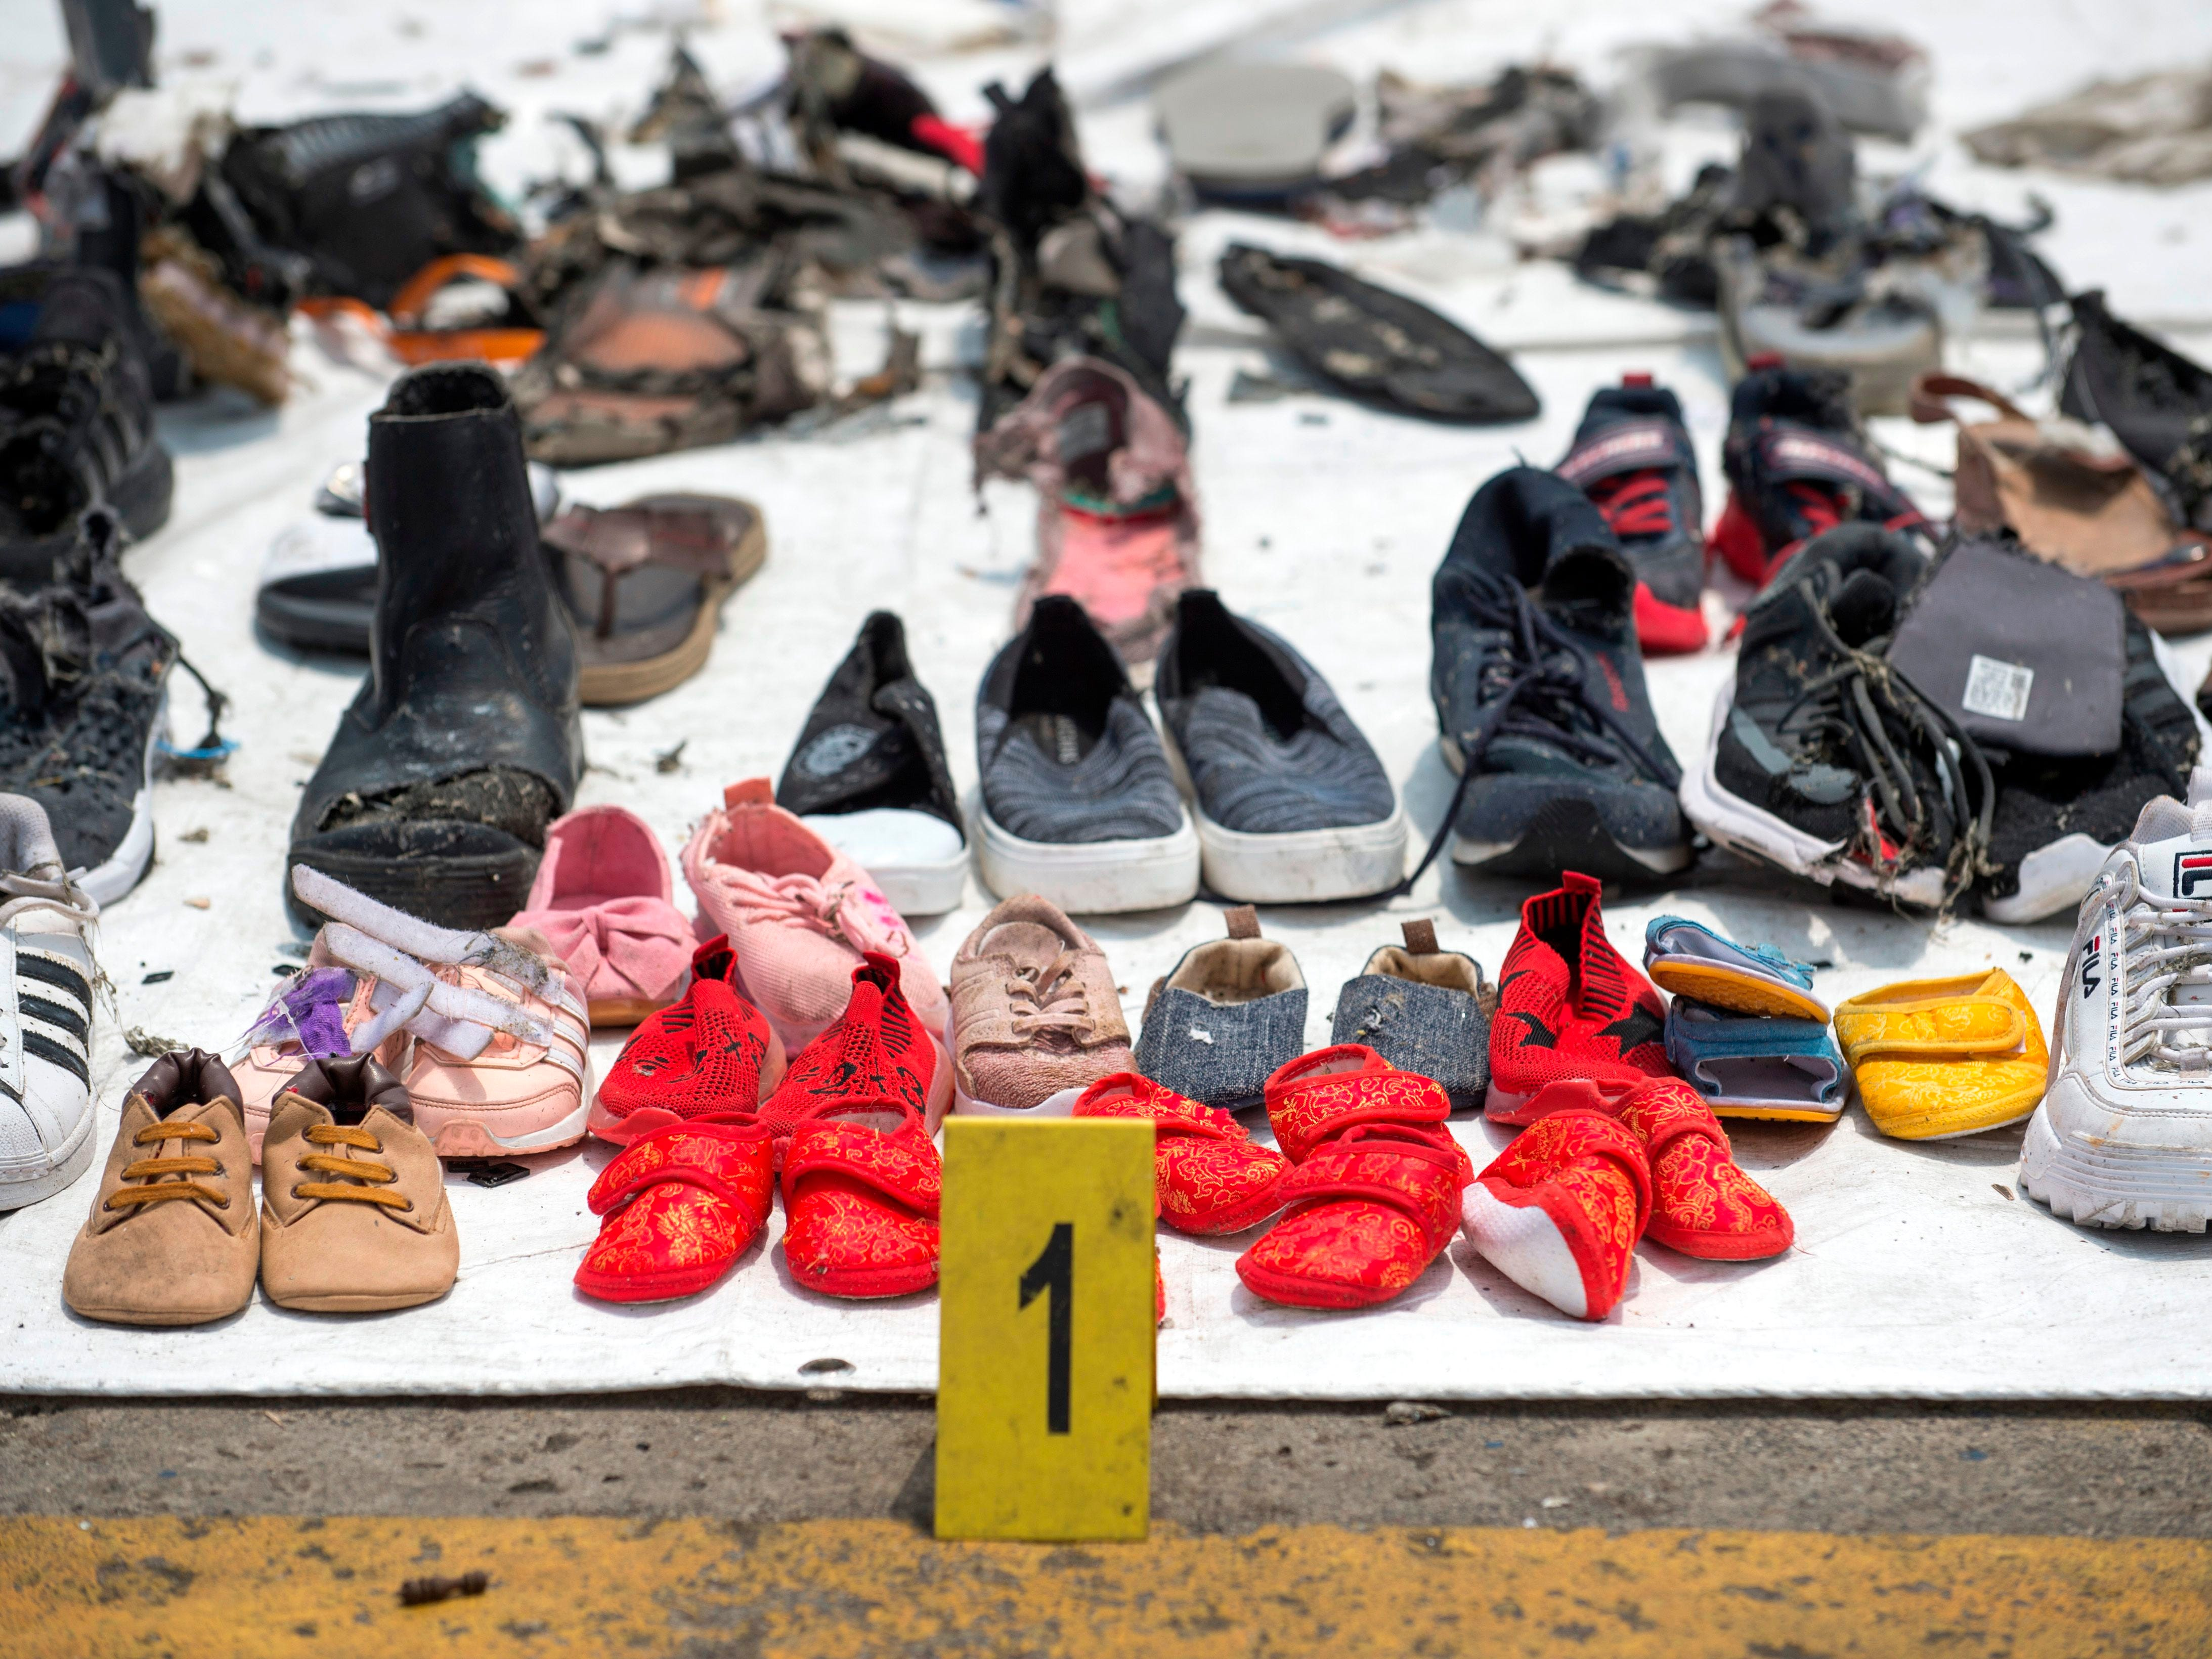 Shoes found during the search for victims of the ill-fated Lion Air flight JT 610 are collected at the Jakarta International Container Terminal in Jakarta, on Oct. 31, 2018. Boeing officials were set to meet with Lion Air after Indonesia orders an inspection of the U.S. plane maker's 737-MAX jets in the wake of the deadly crash feared to have killed 189 people.